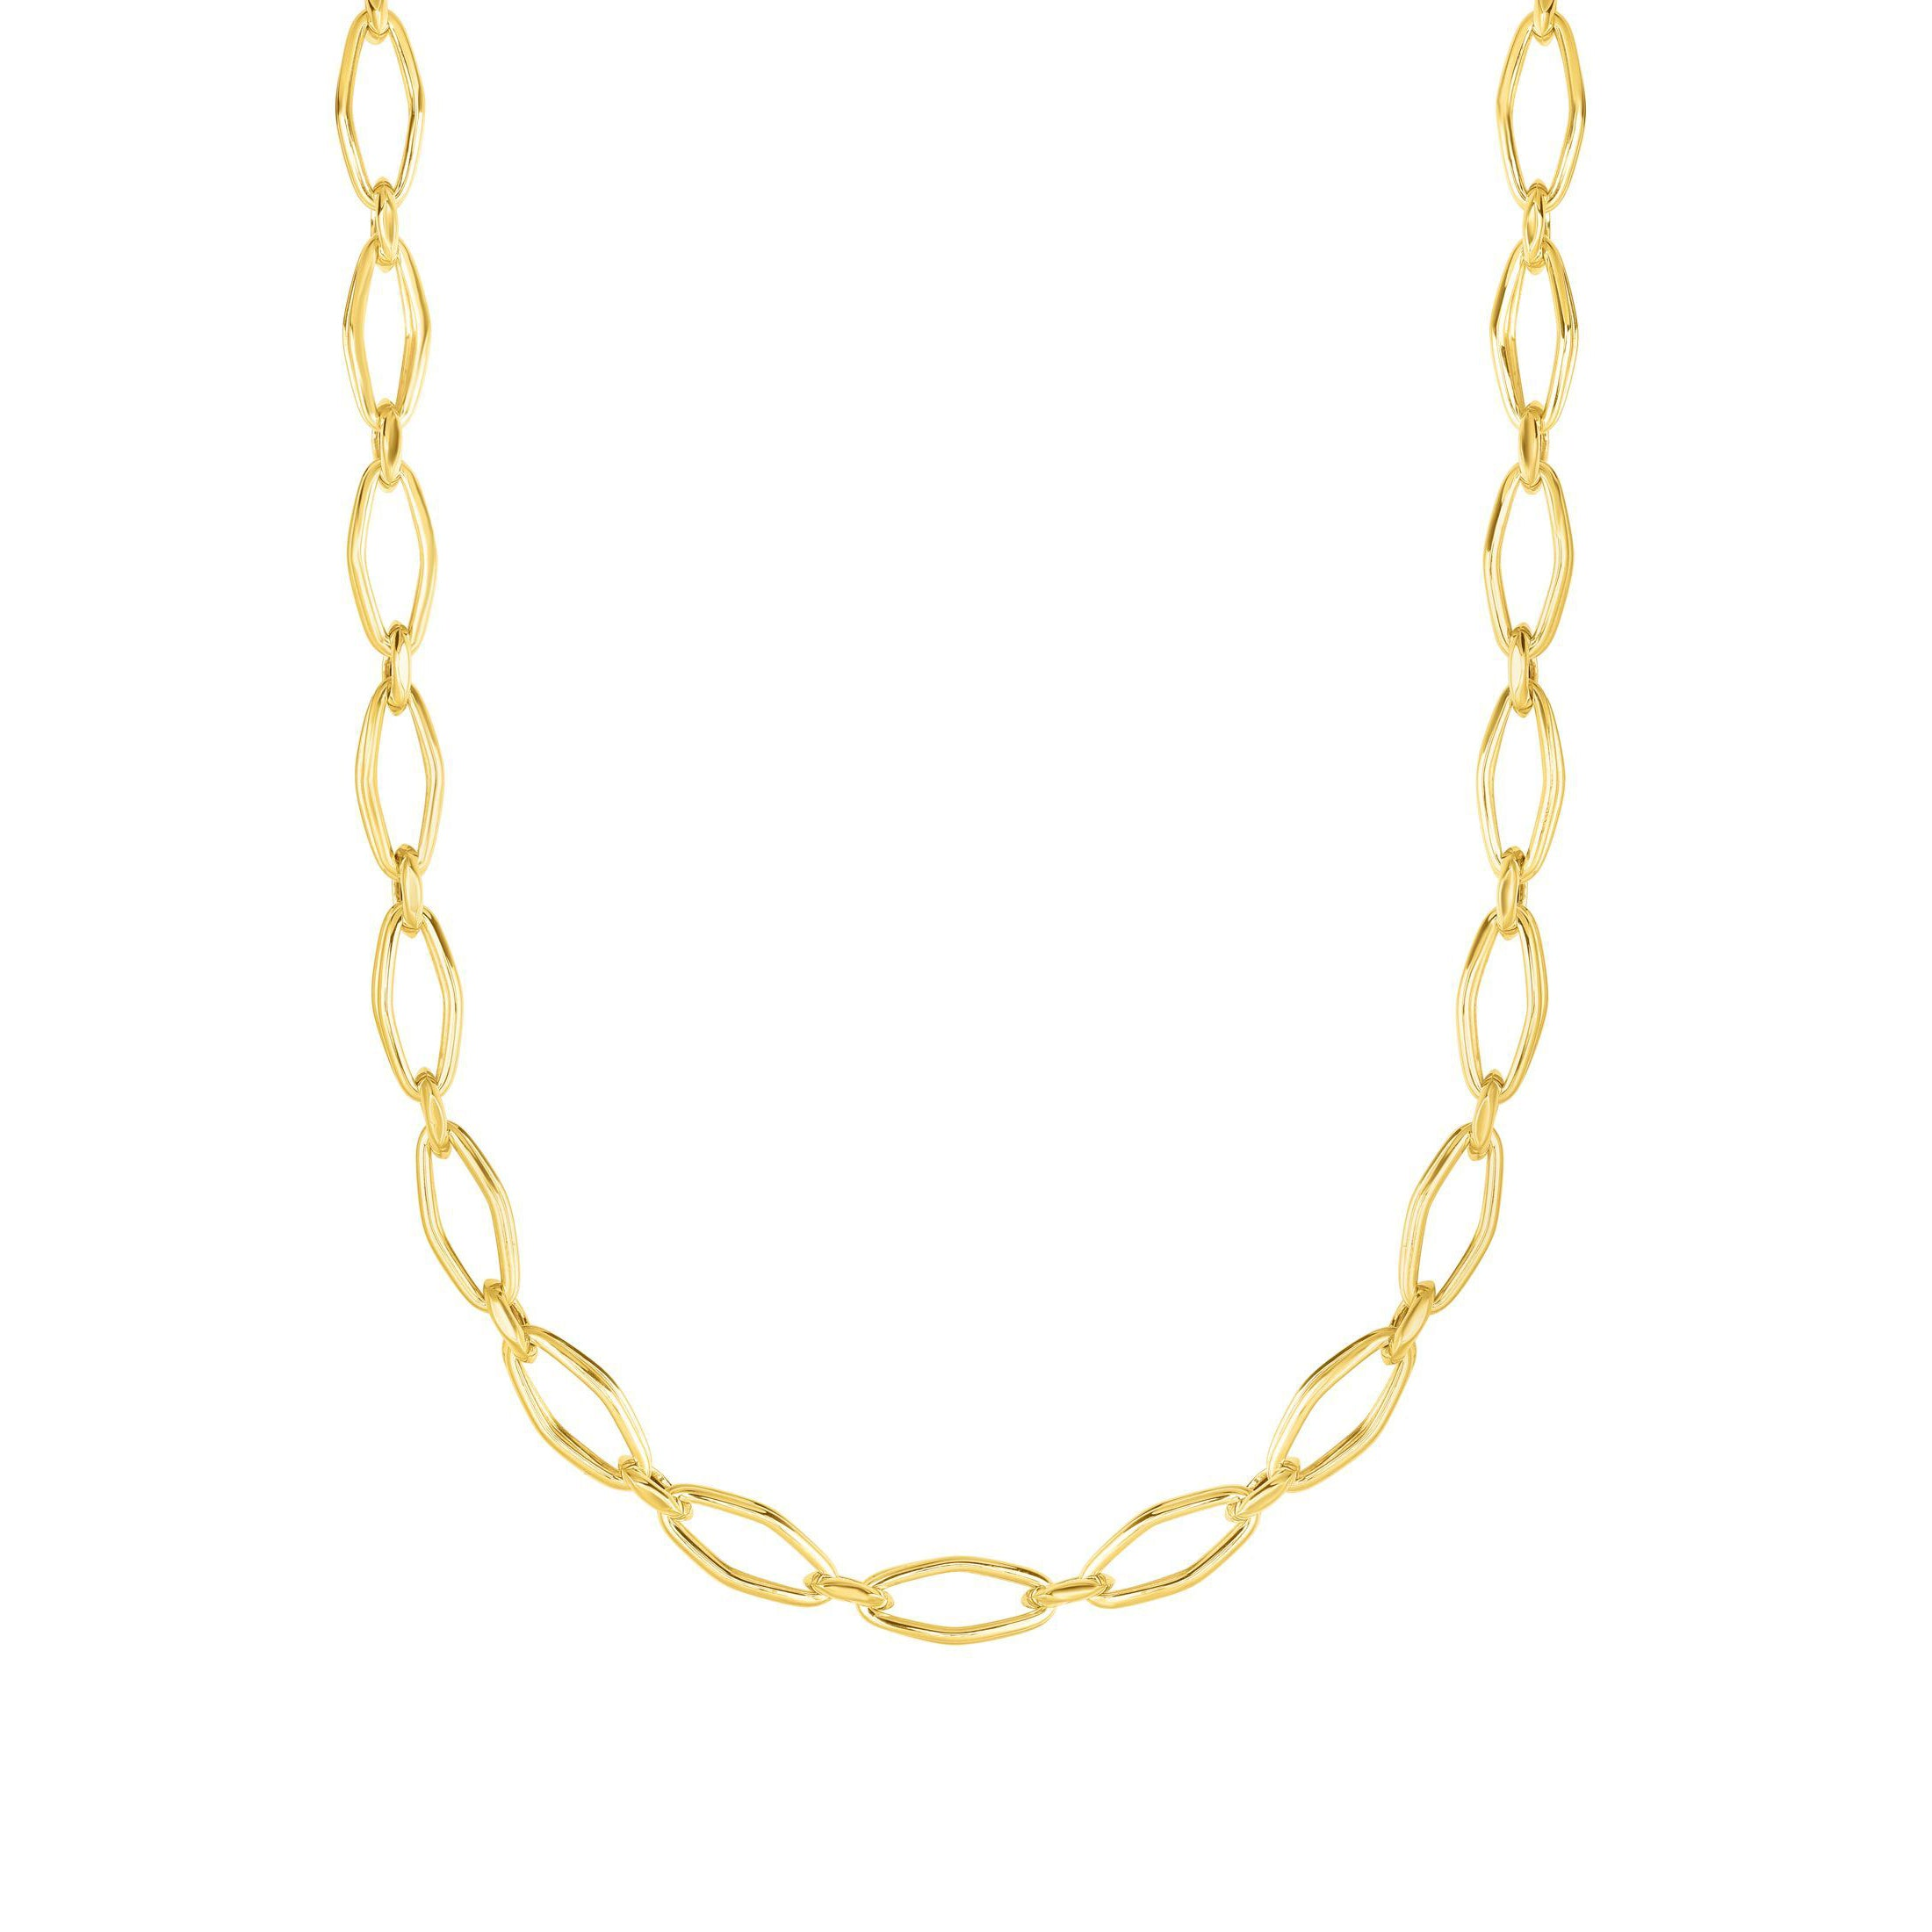 Yellow Gold Open Link Necklace, 14K Yellow Gold